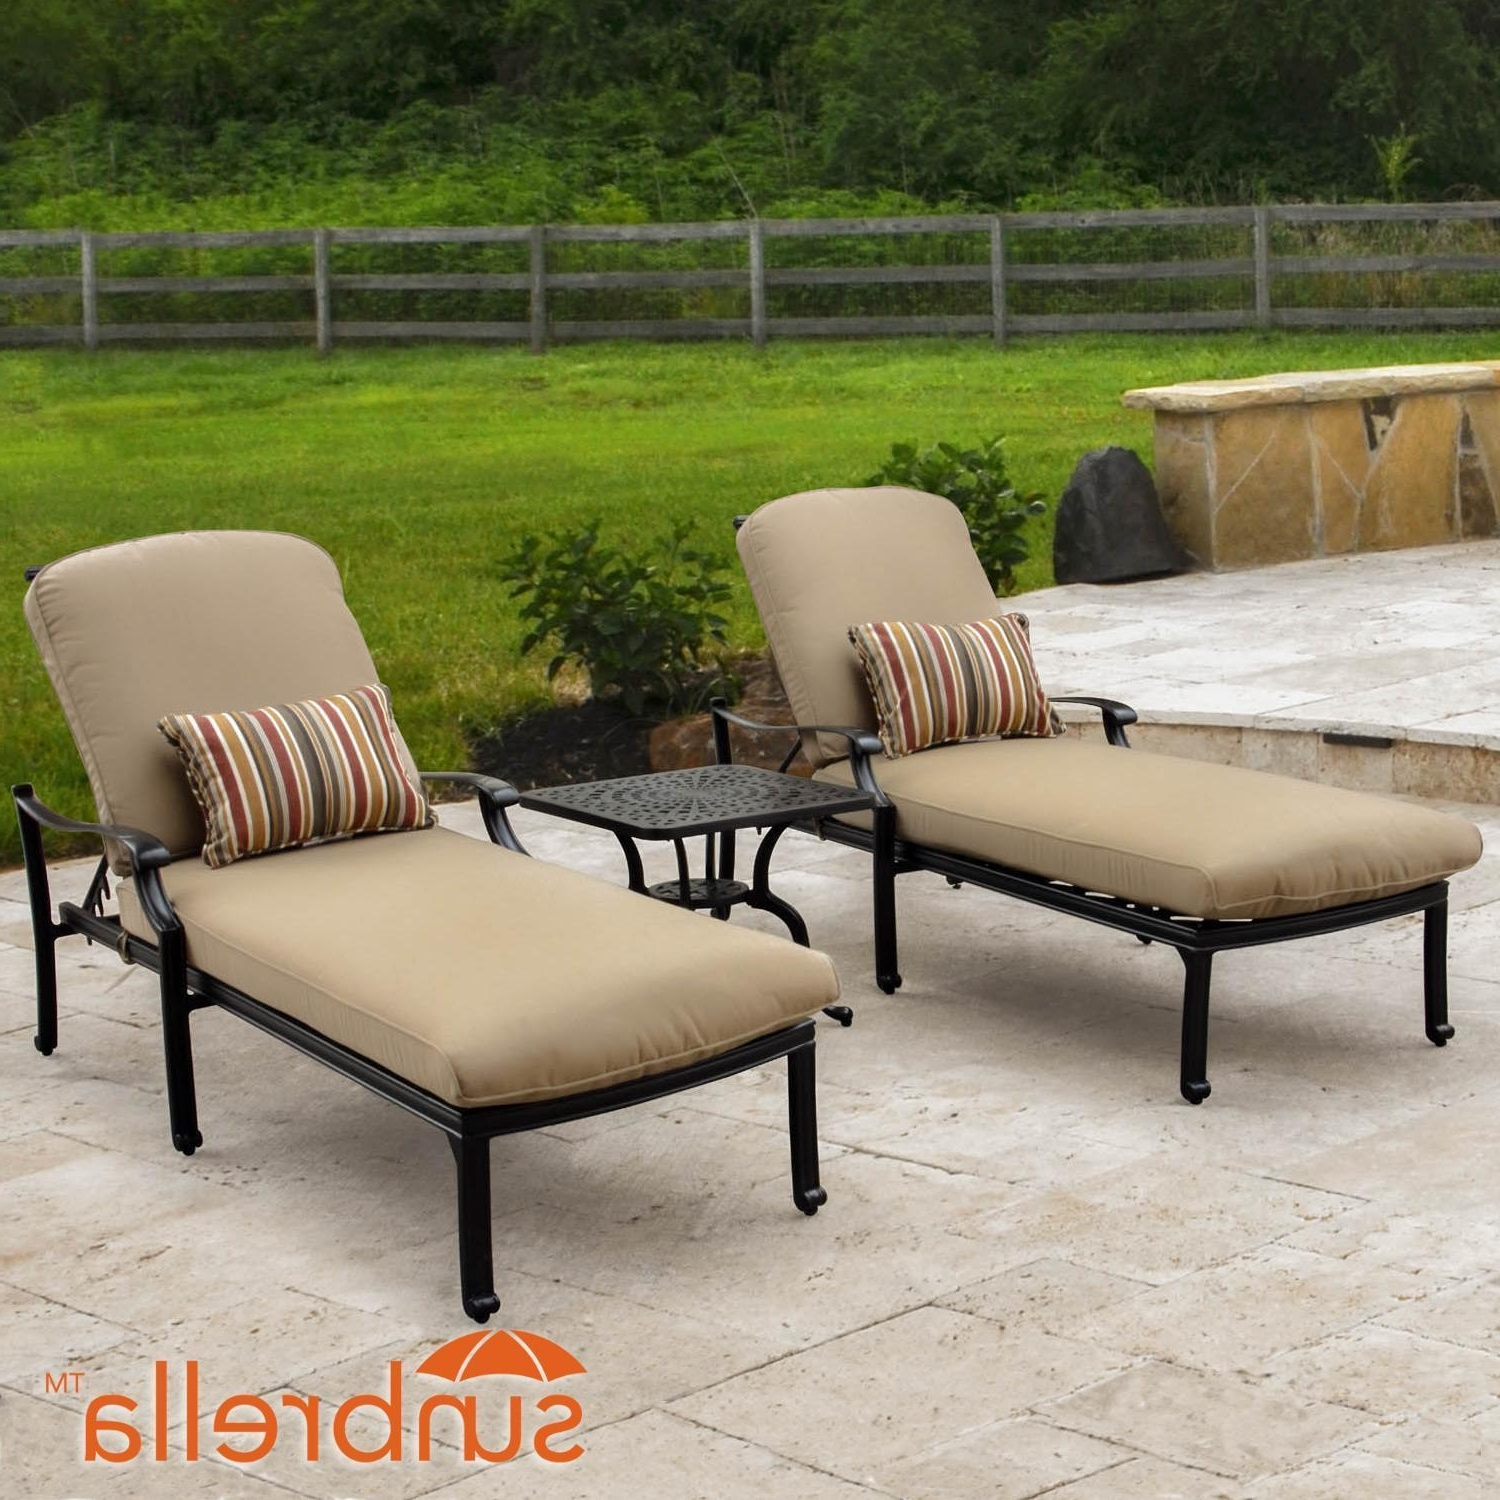 Widely Used Chaise Lounges For Patio In Bocage 3 Piece Cast Aluminum Patio Chaise Lounge Set W/ Sunbrella (View 14 of 15)